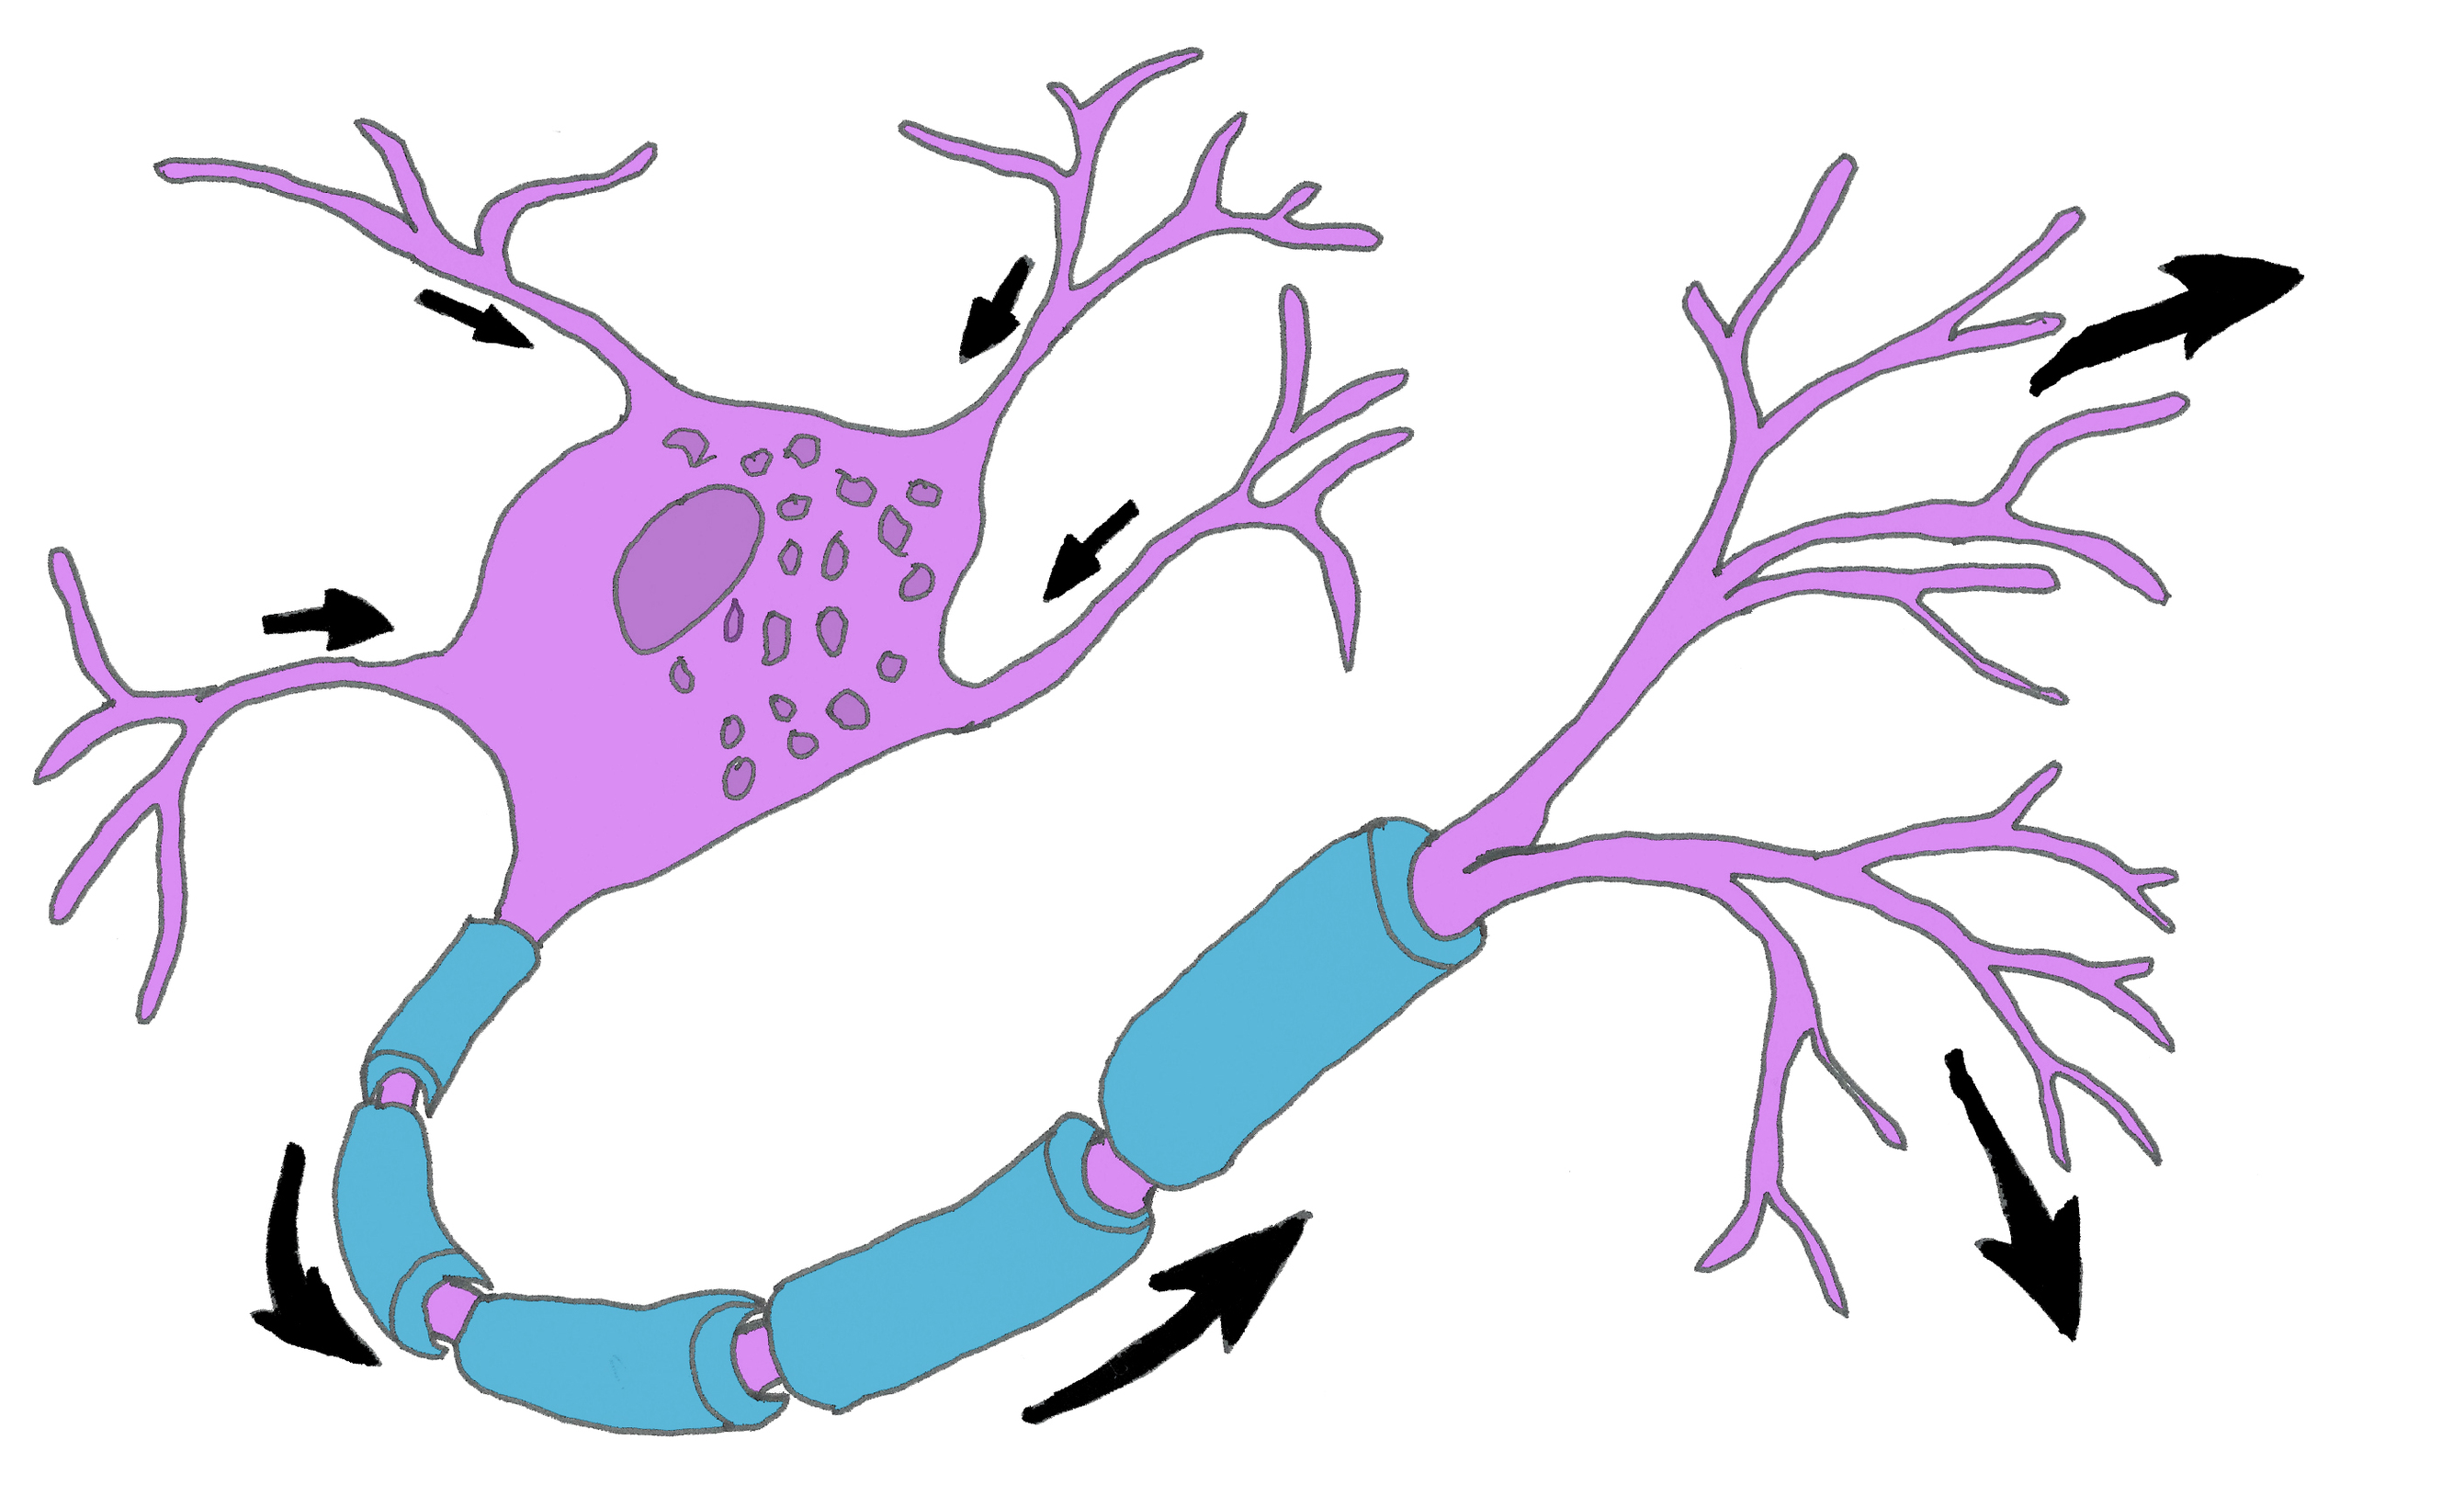 Diagram Of Nerve Cell.